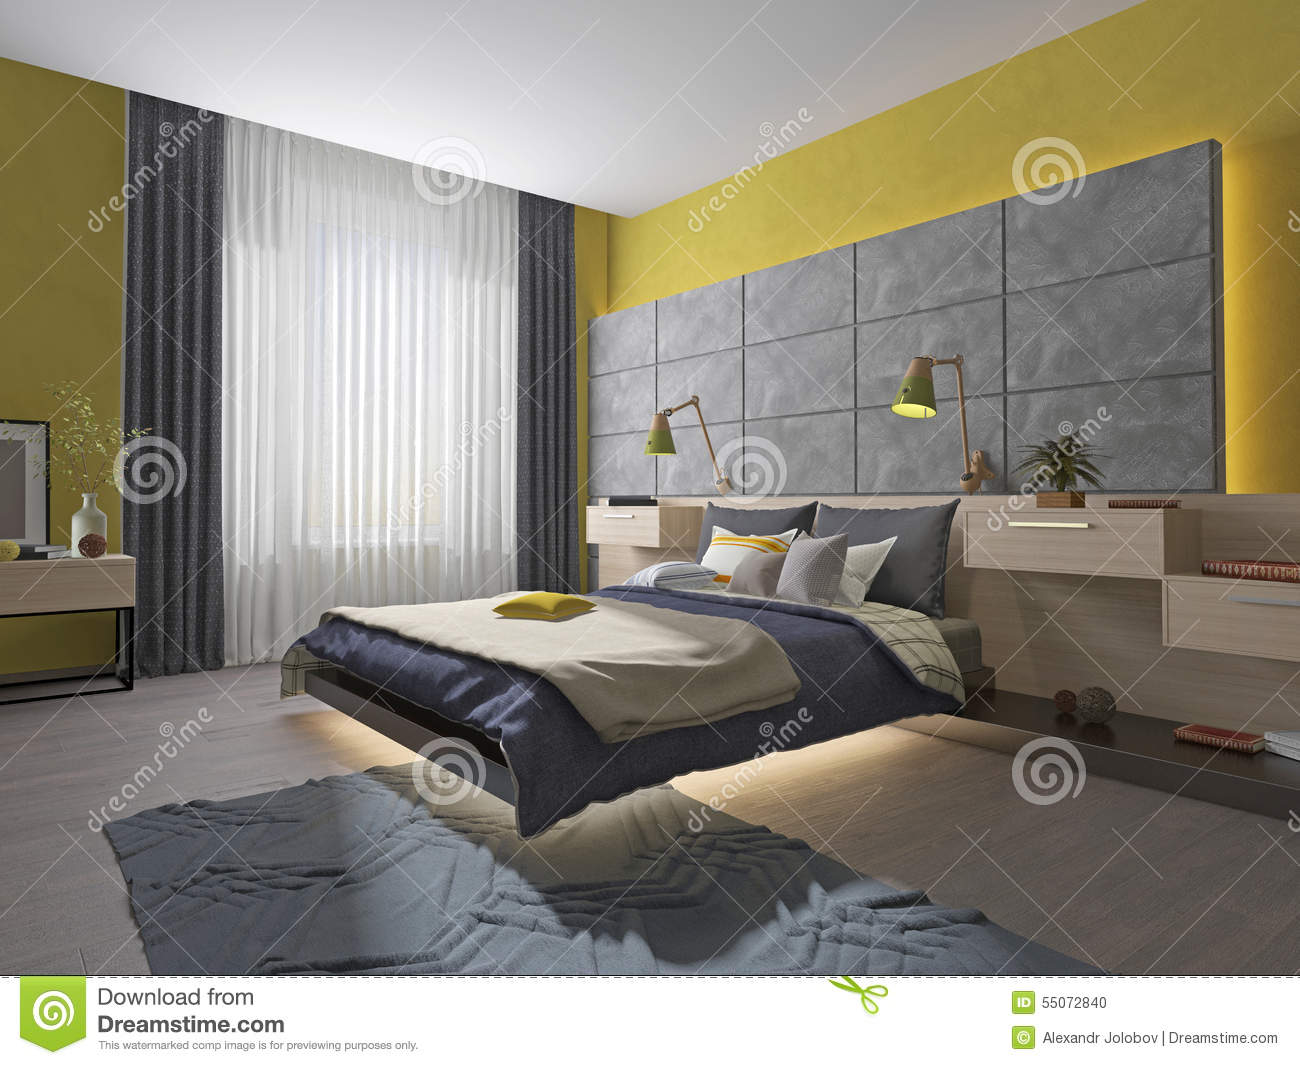 Royalty-Free Illustration. Download Interior Bedroom Teenager Bed ...